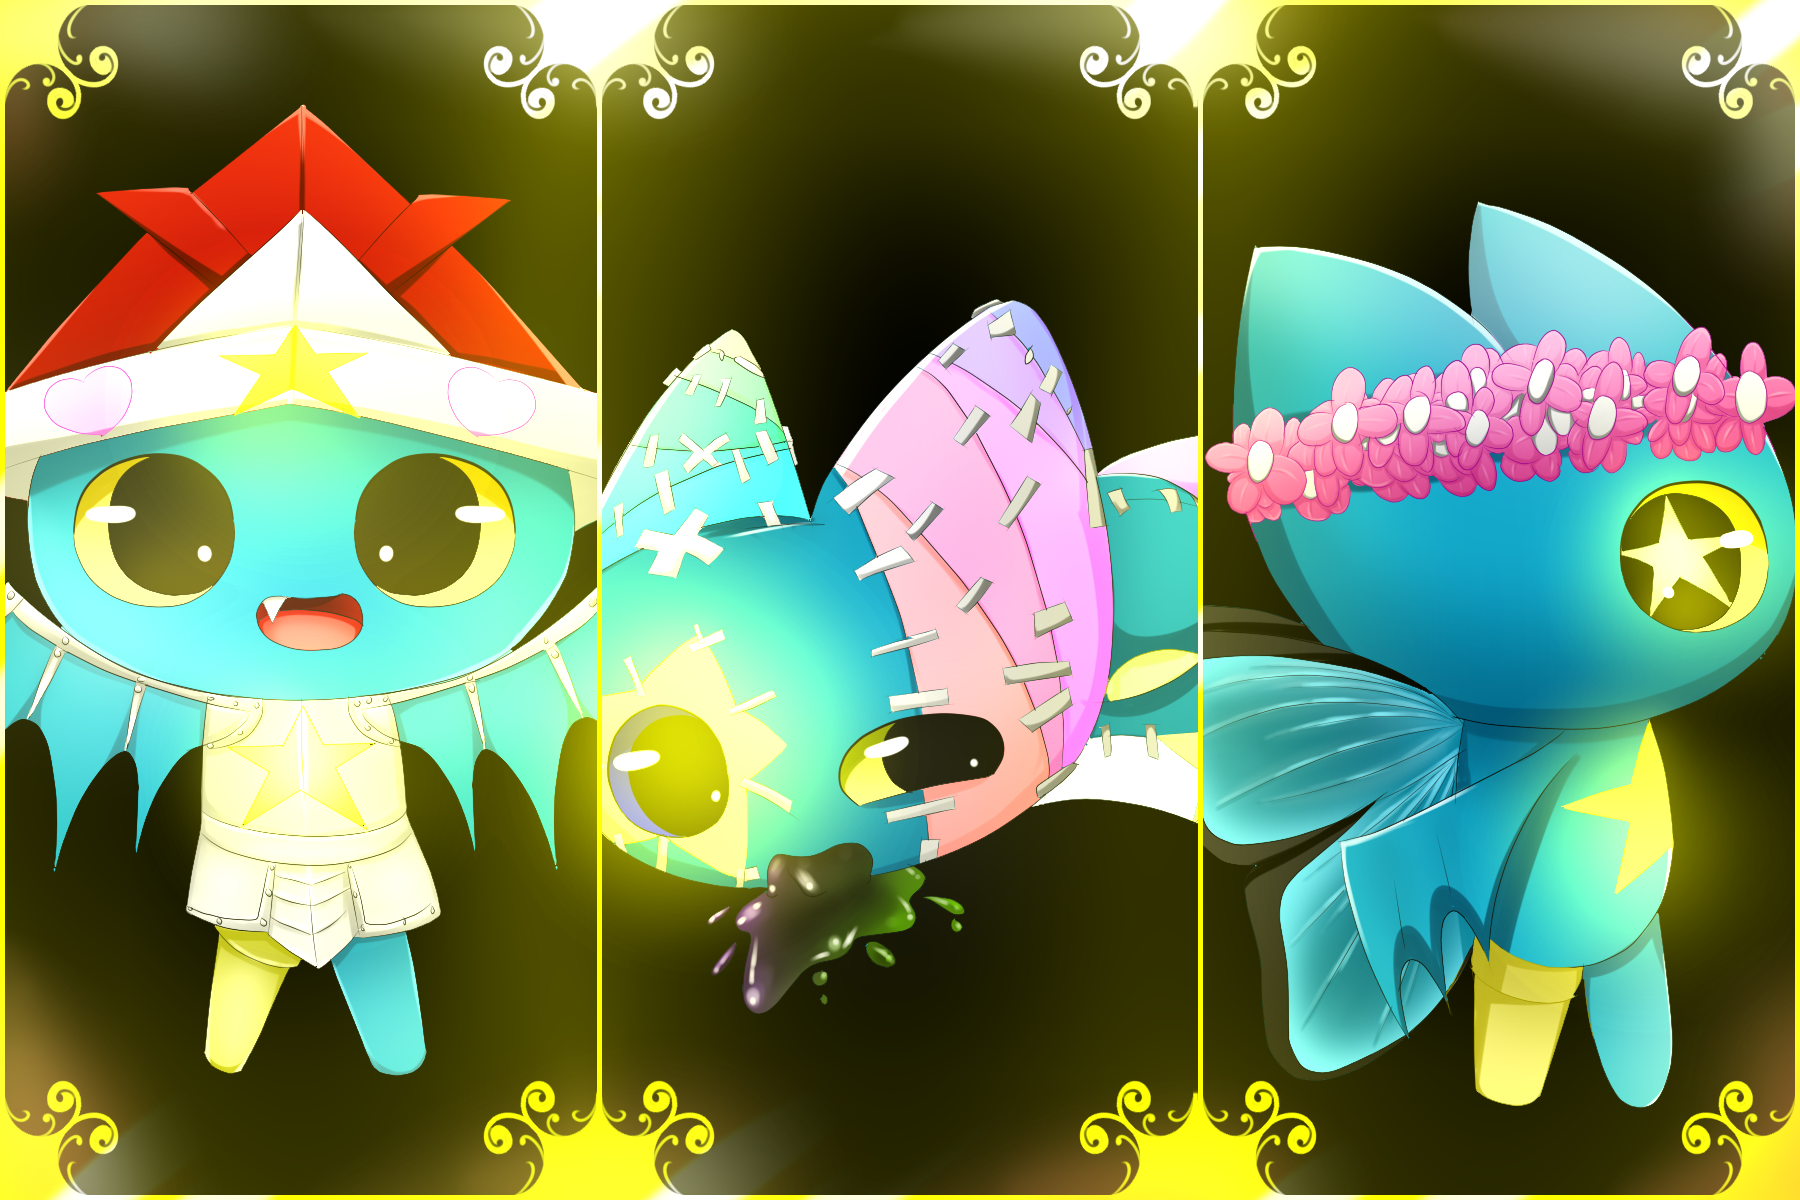 Pick Your Class Adorabat By Ripped Scar On Deviantart Adorabat is the tritagonist of mao mao: adorabat by ripped scar on deviantart